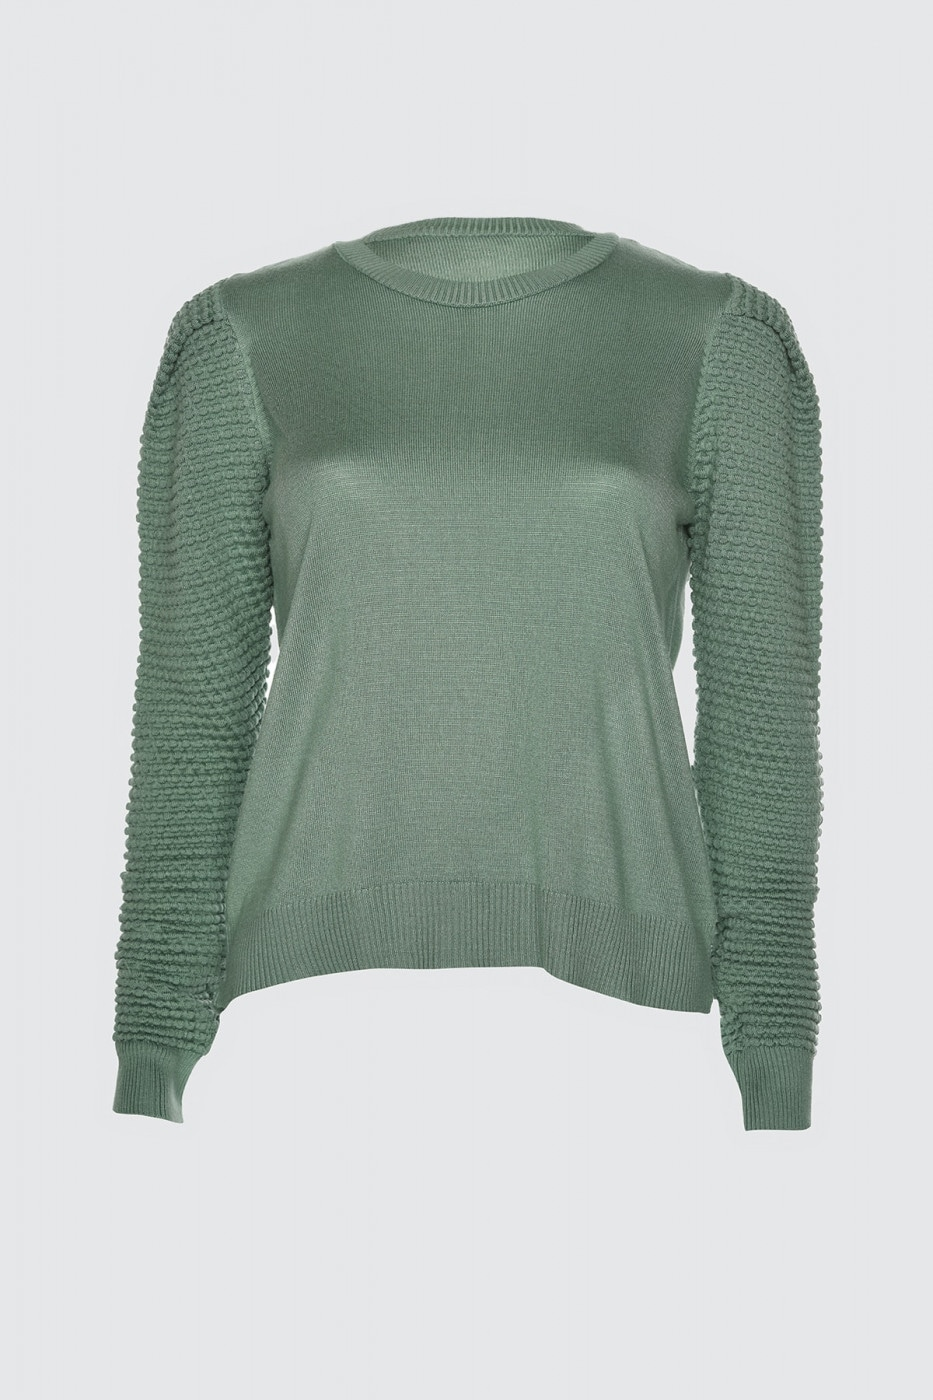 Trendyol Mint Arm Knitting Detailed Knitwear Sweater